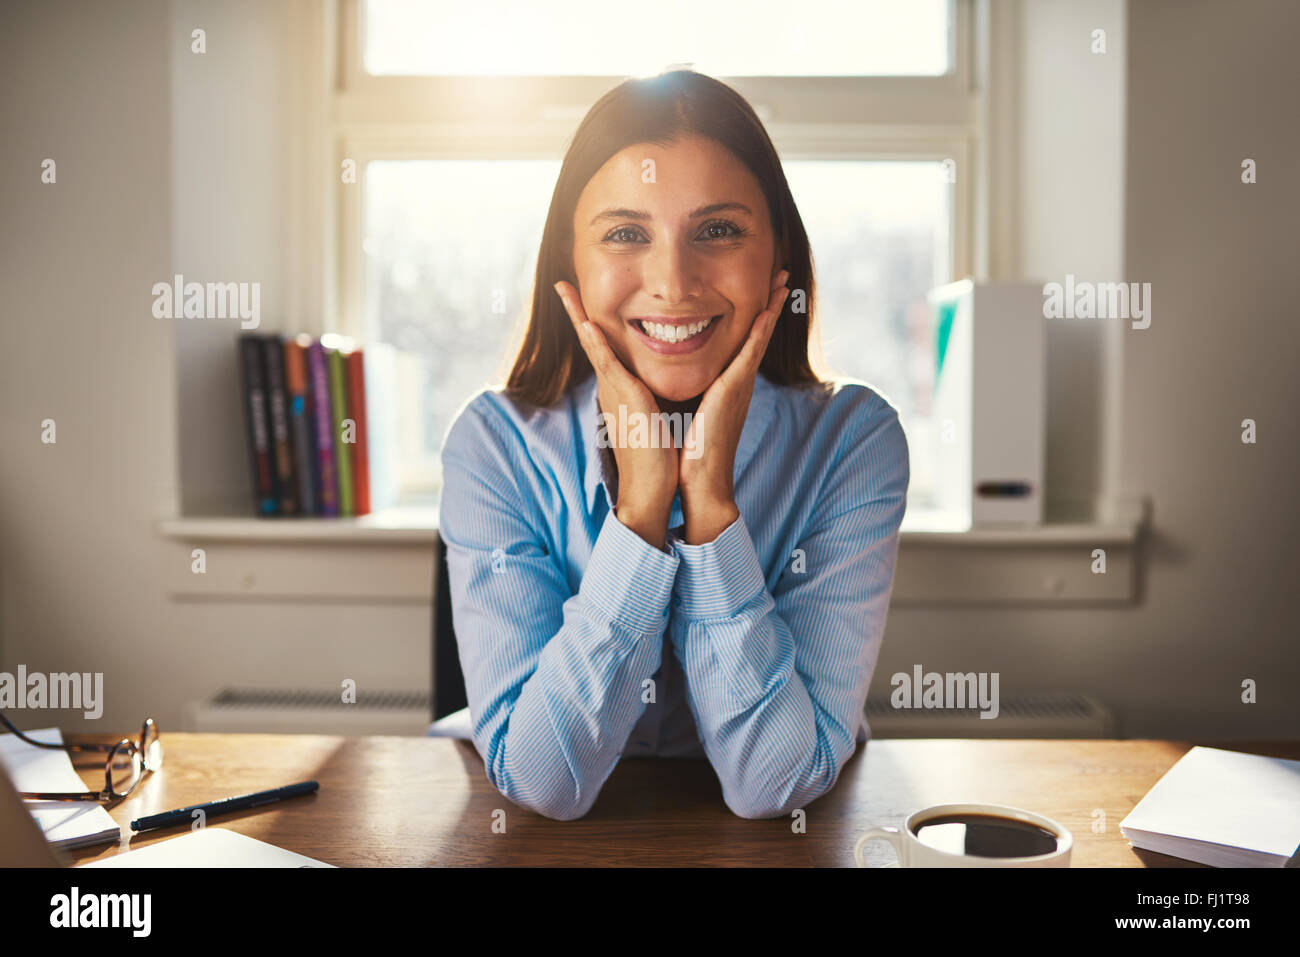 Female entrepreneur business woman smiling at camera working at office - Stock Image